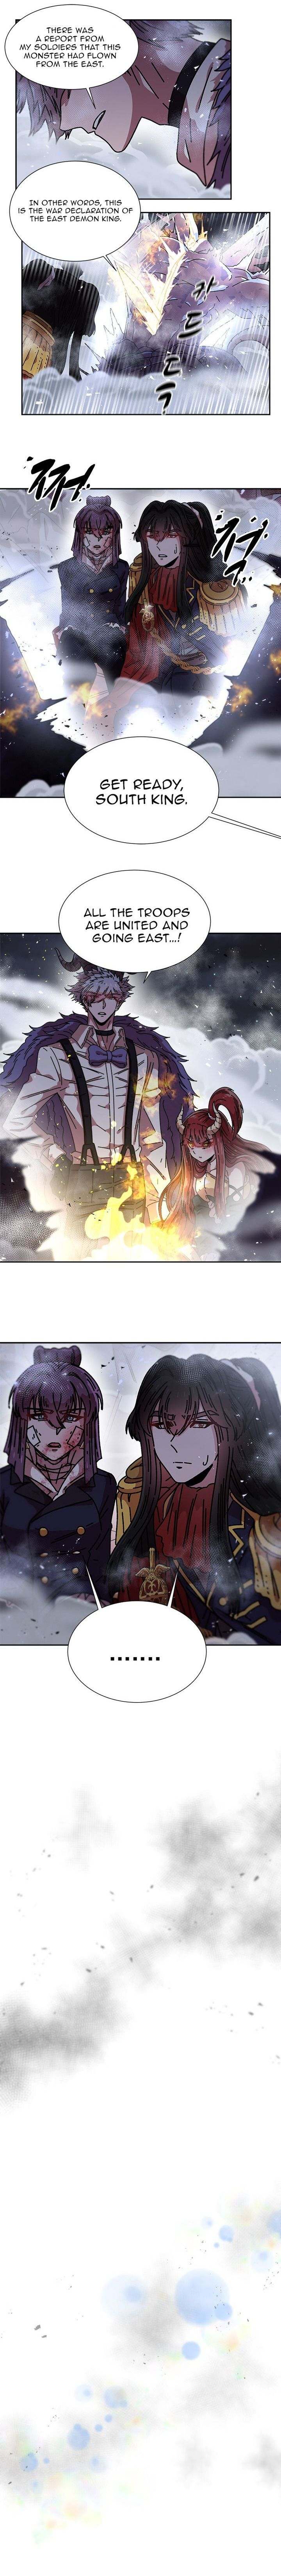 i_was_born_as_the_demon_lords_daughter_41_7